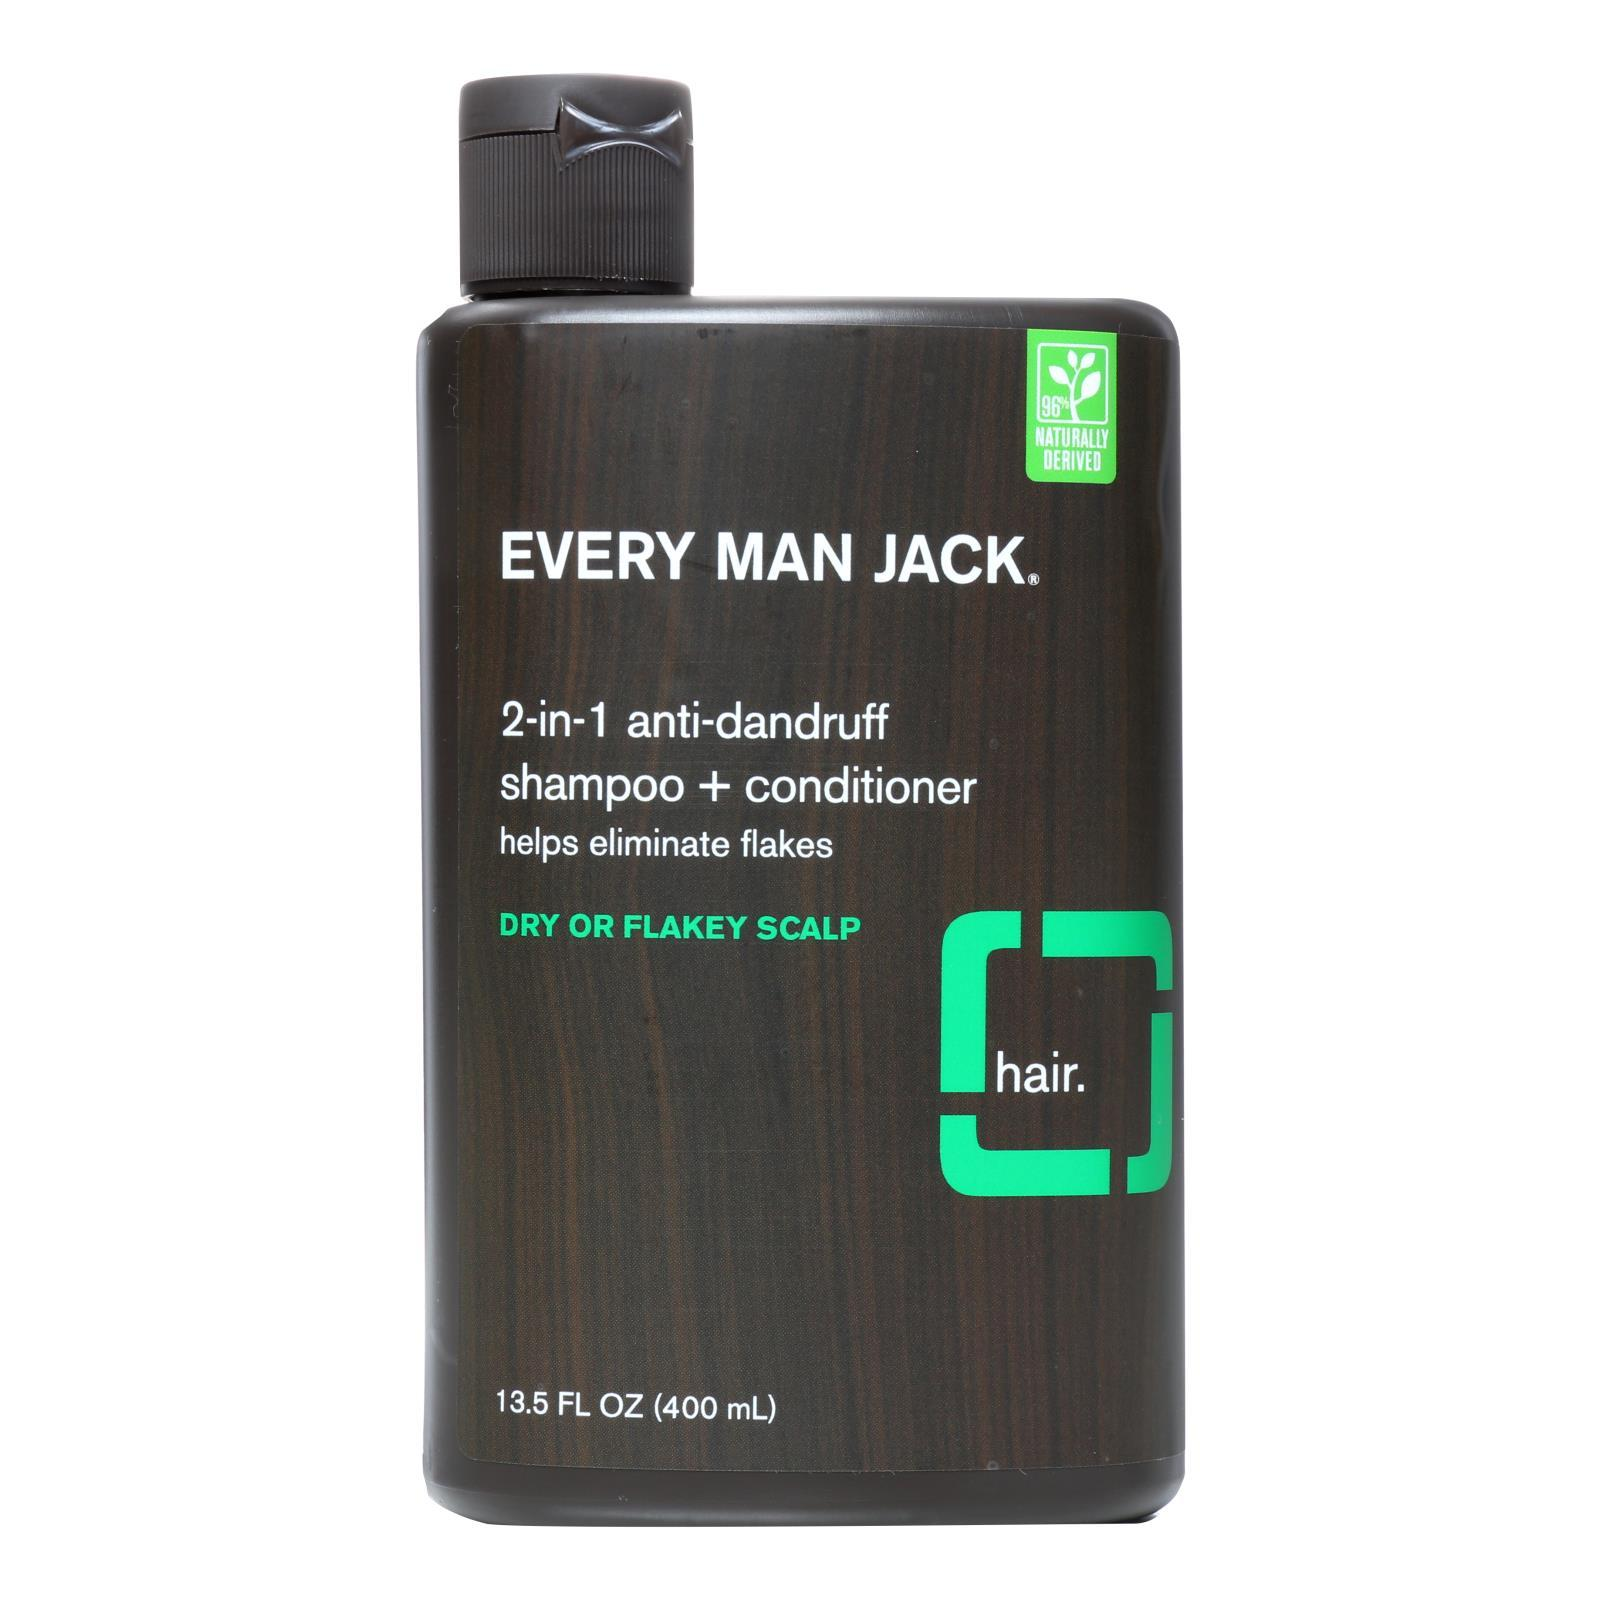 Every Man Jack Shampoo - 2in1 - Anti-dandruff - 13.50 Fl Oz - BeeGreen